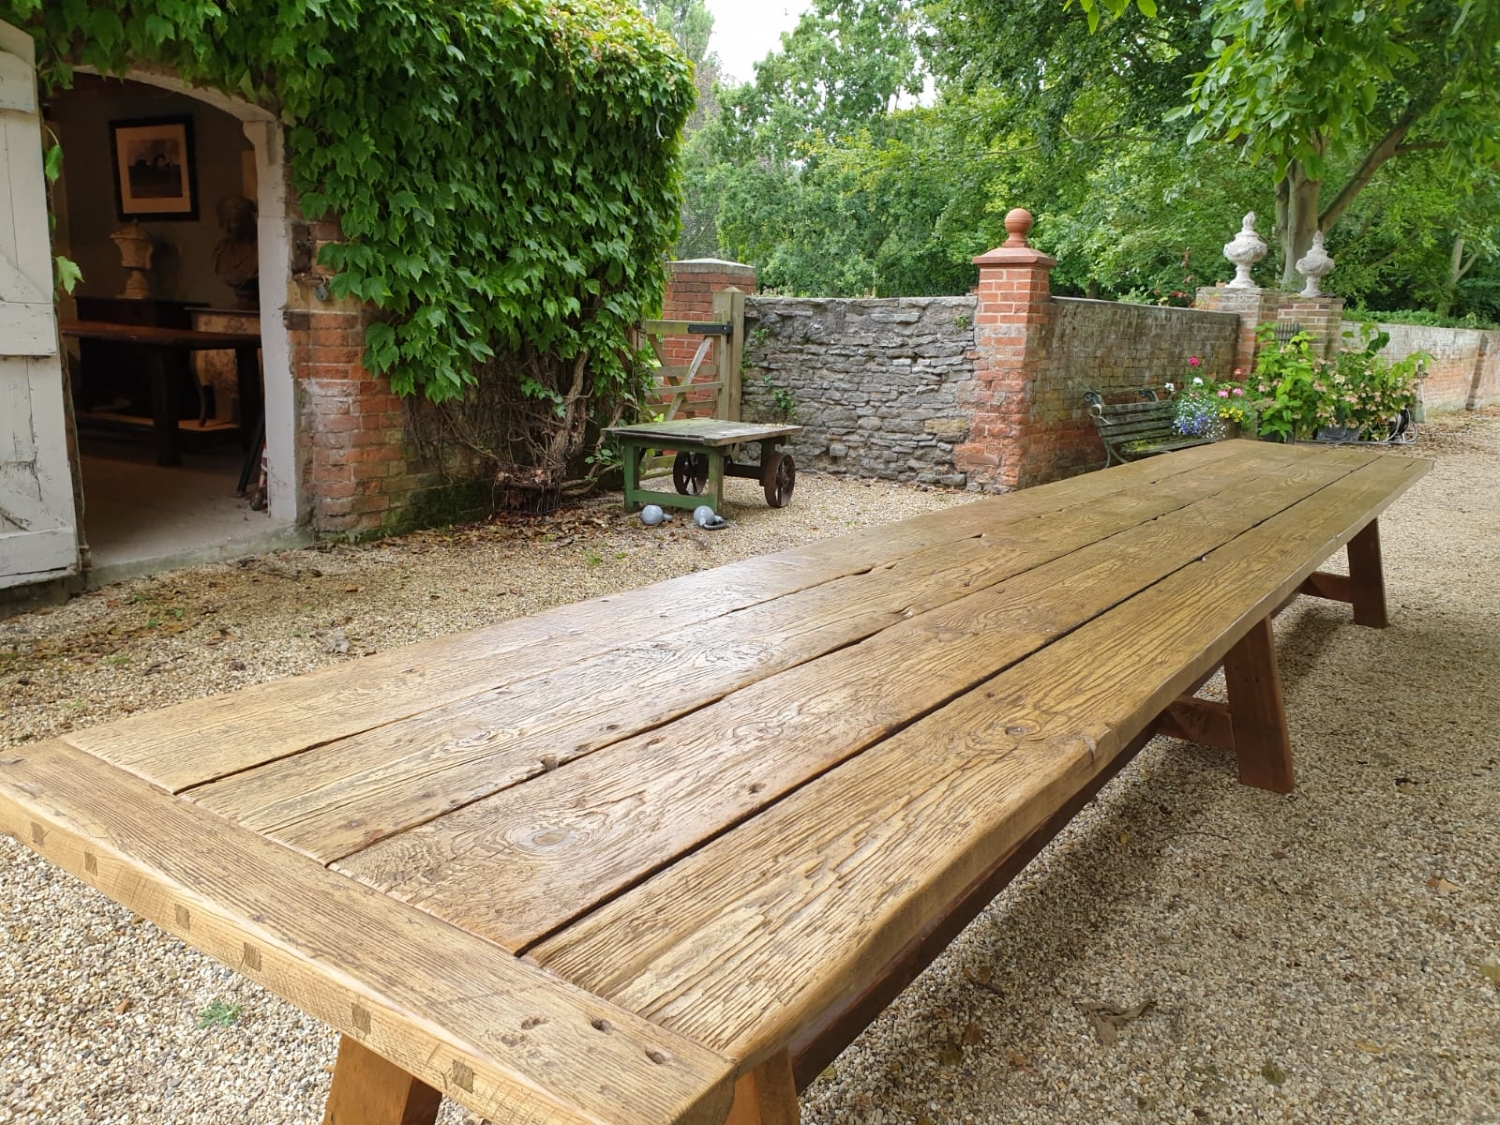 19th Century Period Dining Table 6m Long, Seats 24 with Comfort